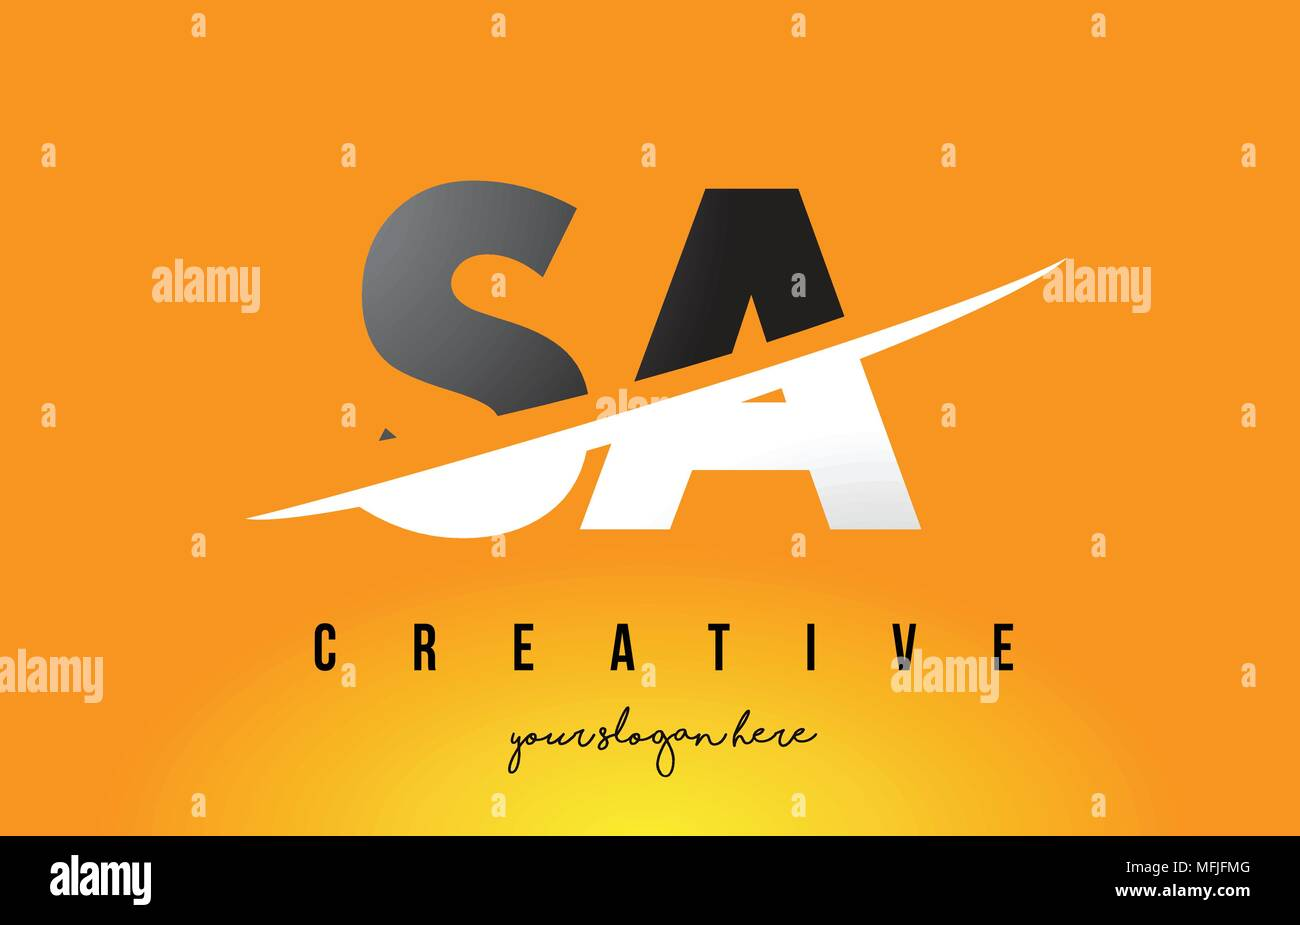 SA S A Letter Modern Logo Design with Swoosh Cutting the Middle Letters and Yellow Background. Stock Vector